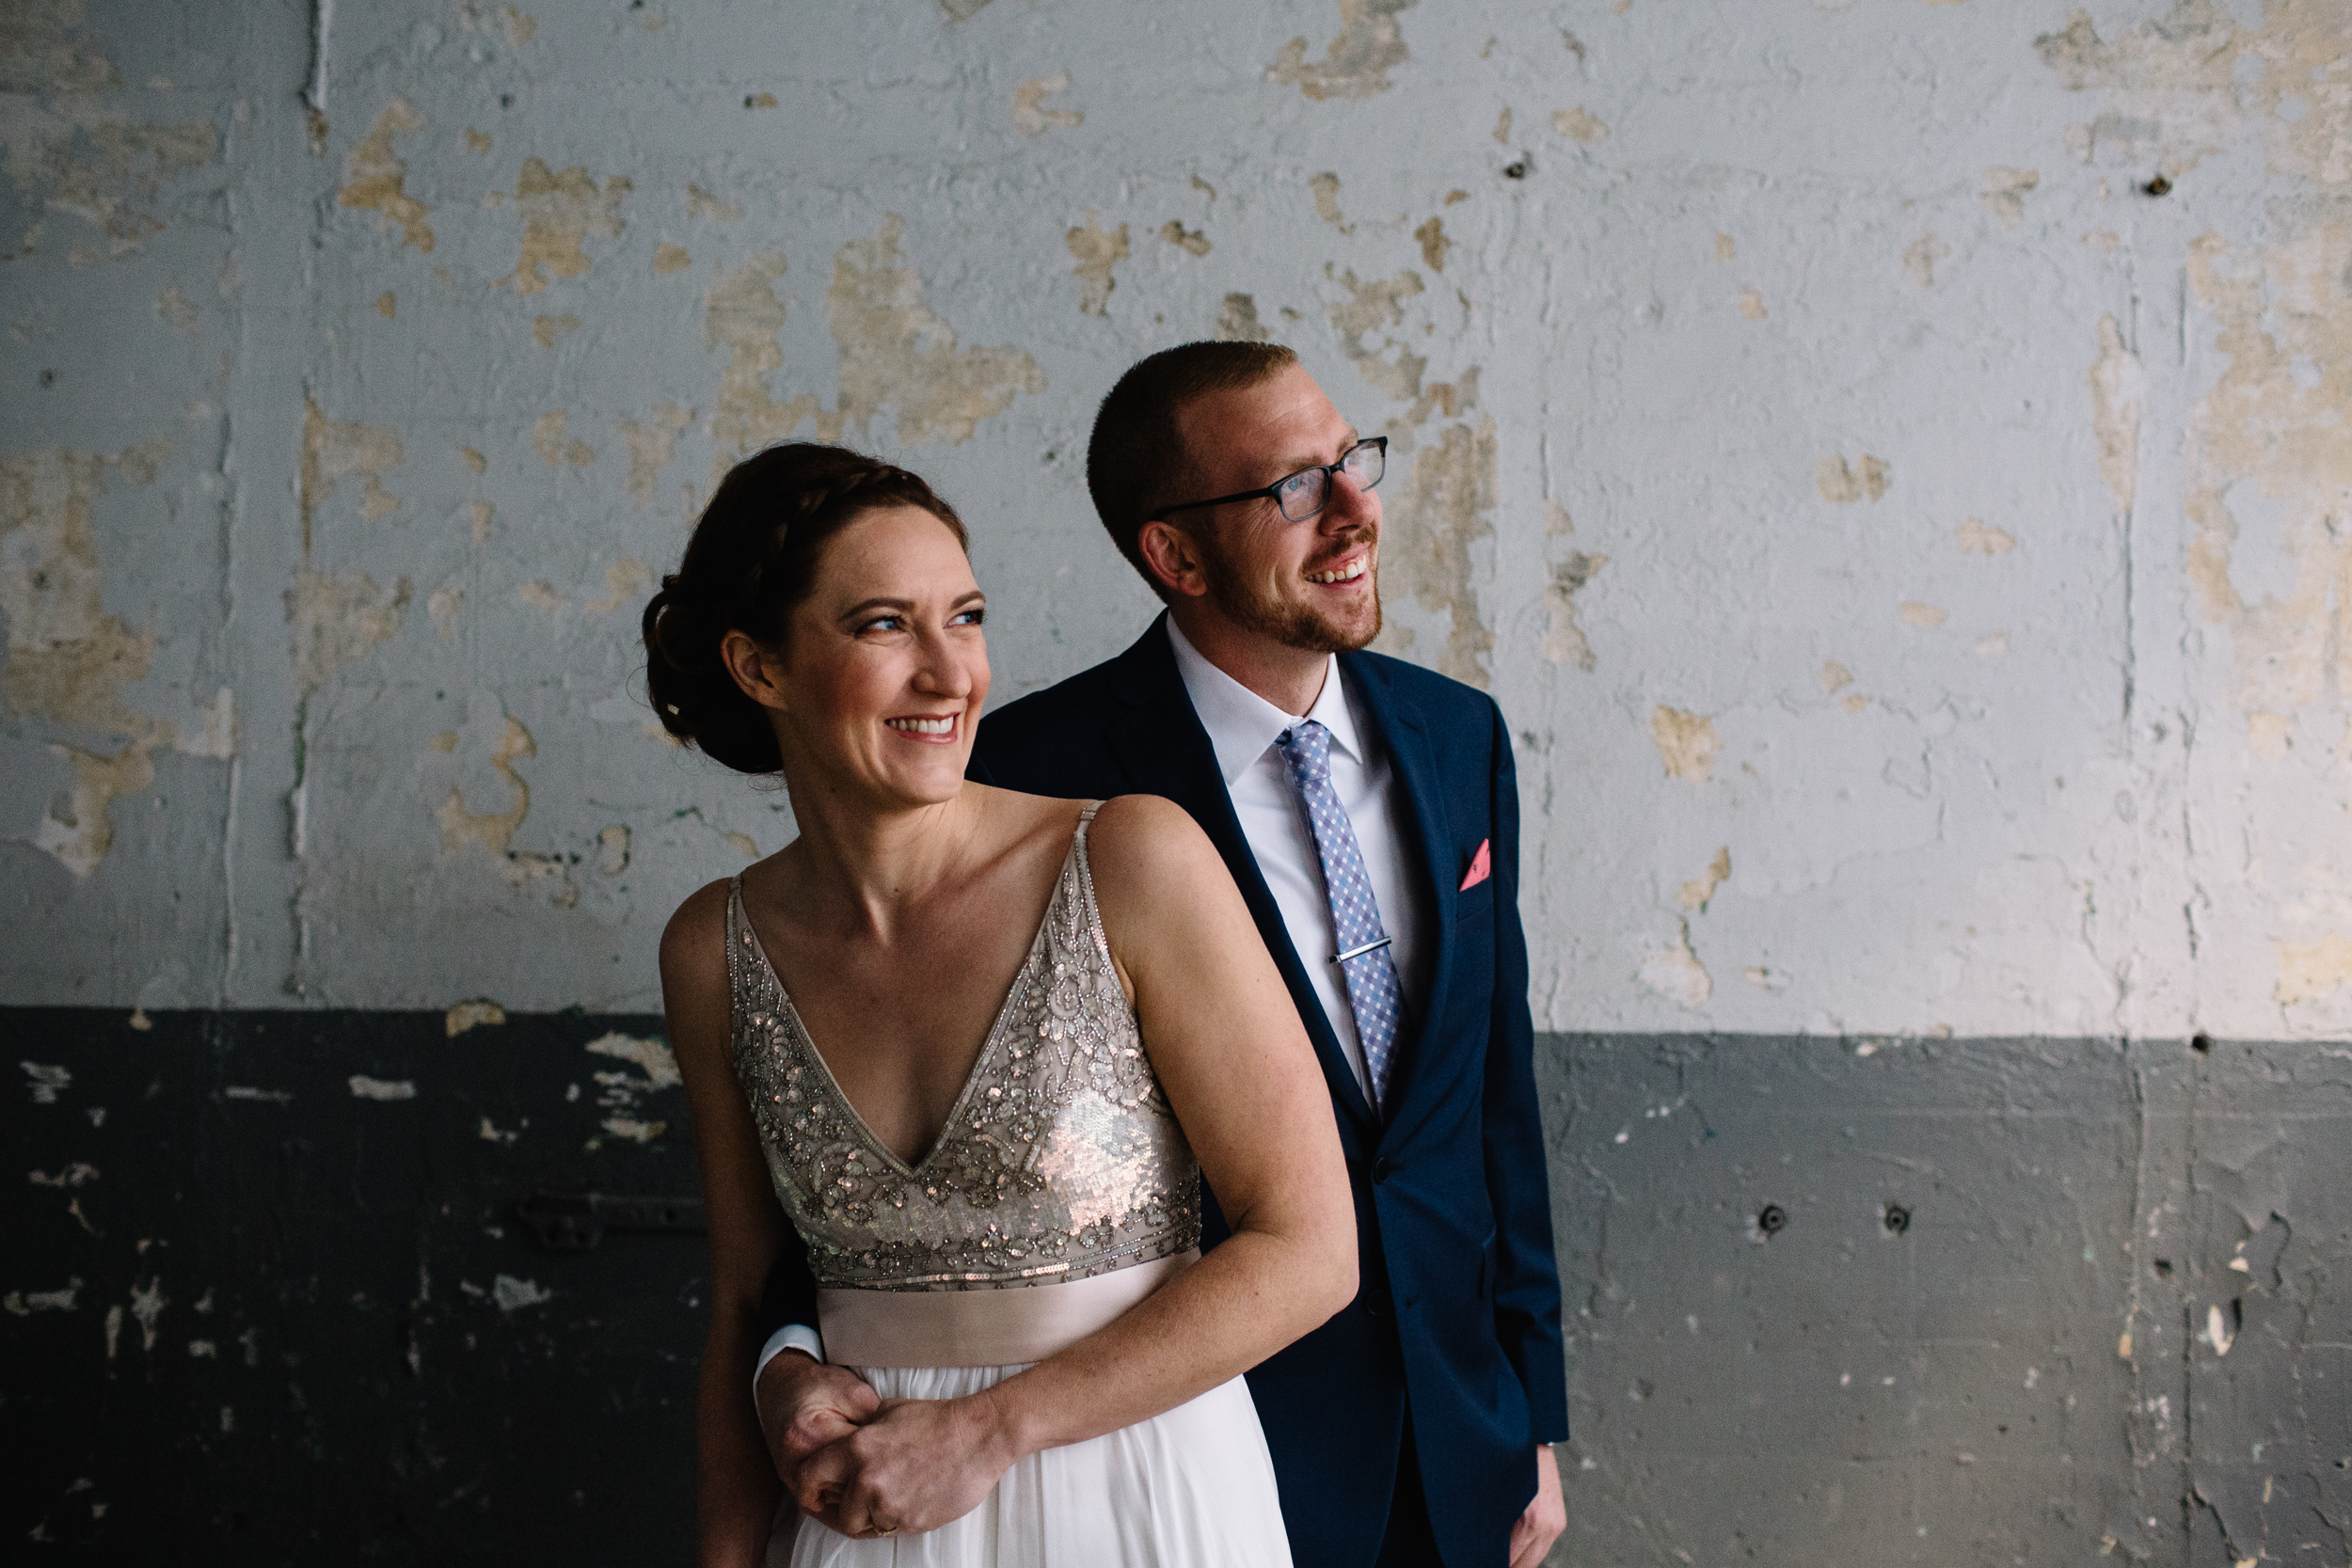 brooklynindustrialweddingphotographer-3-3